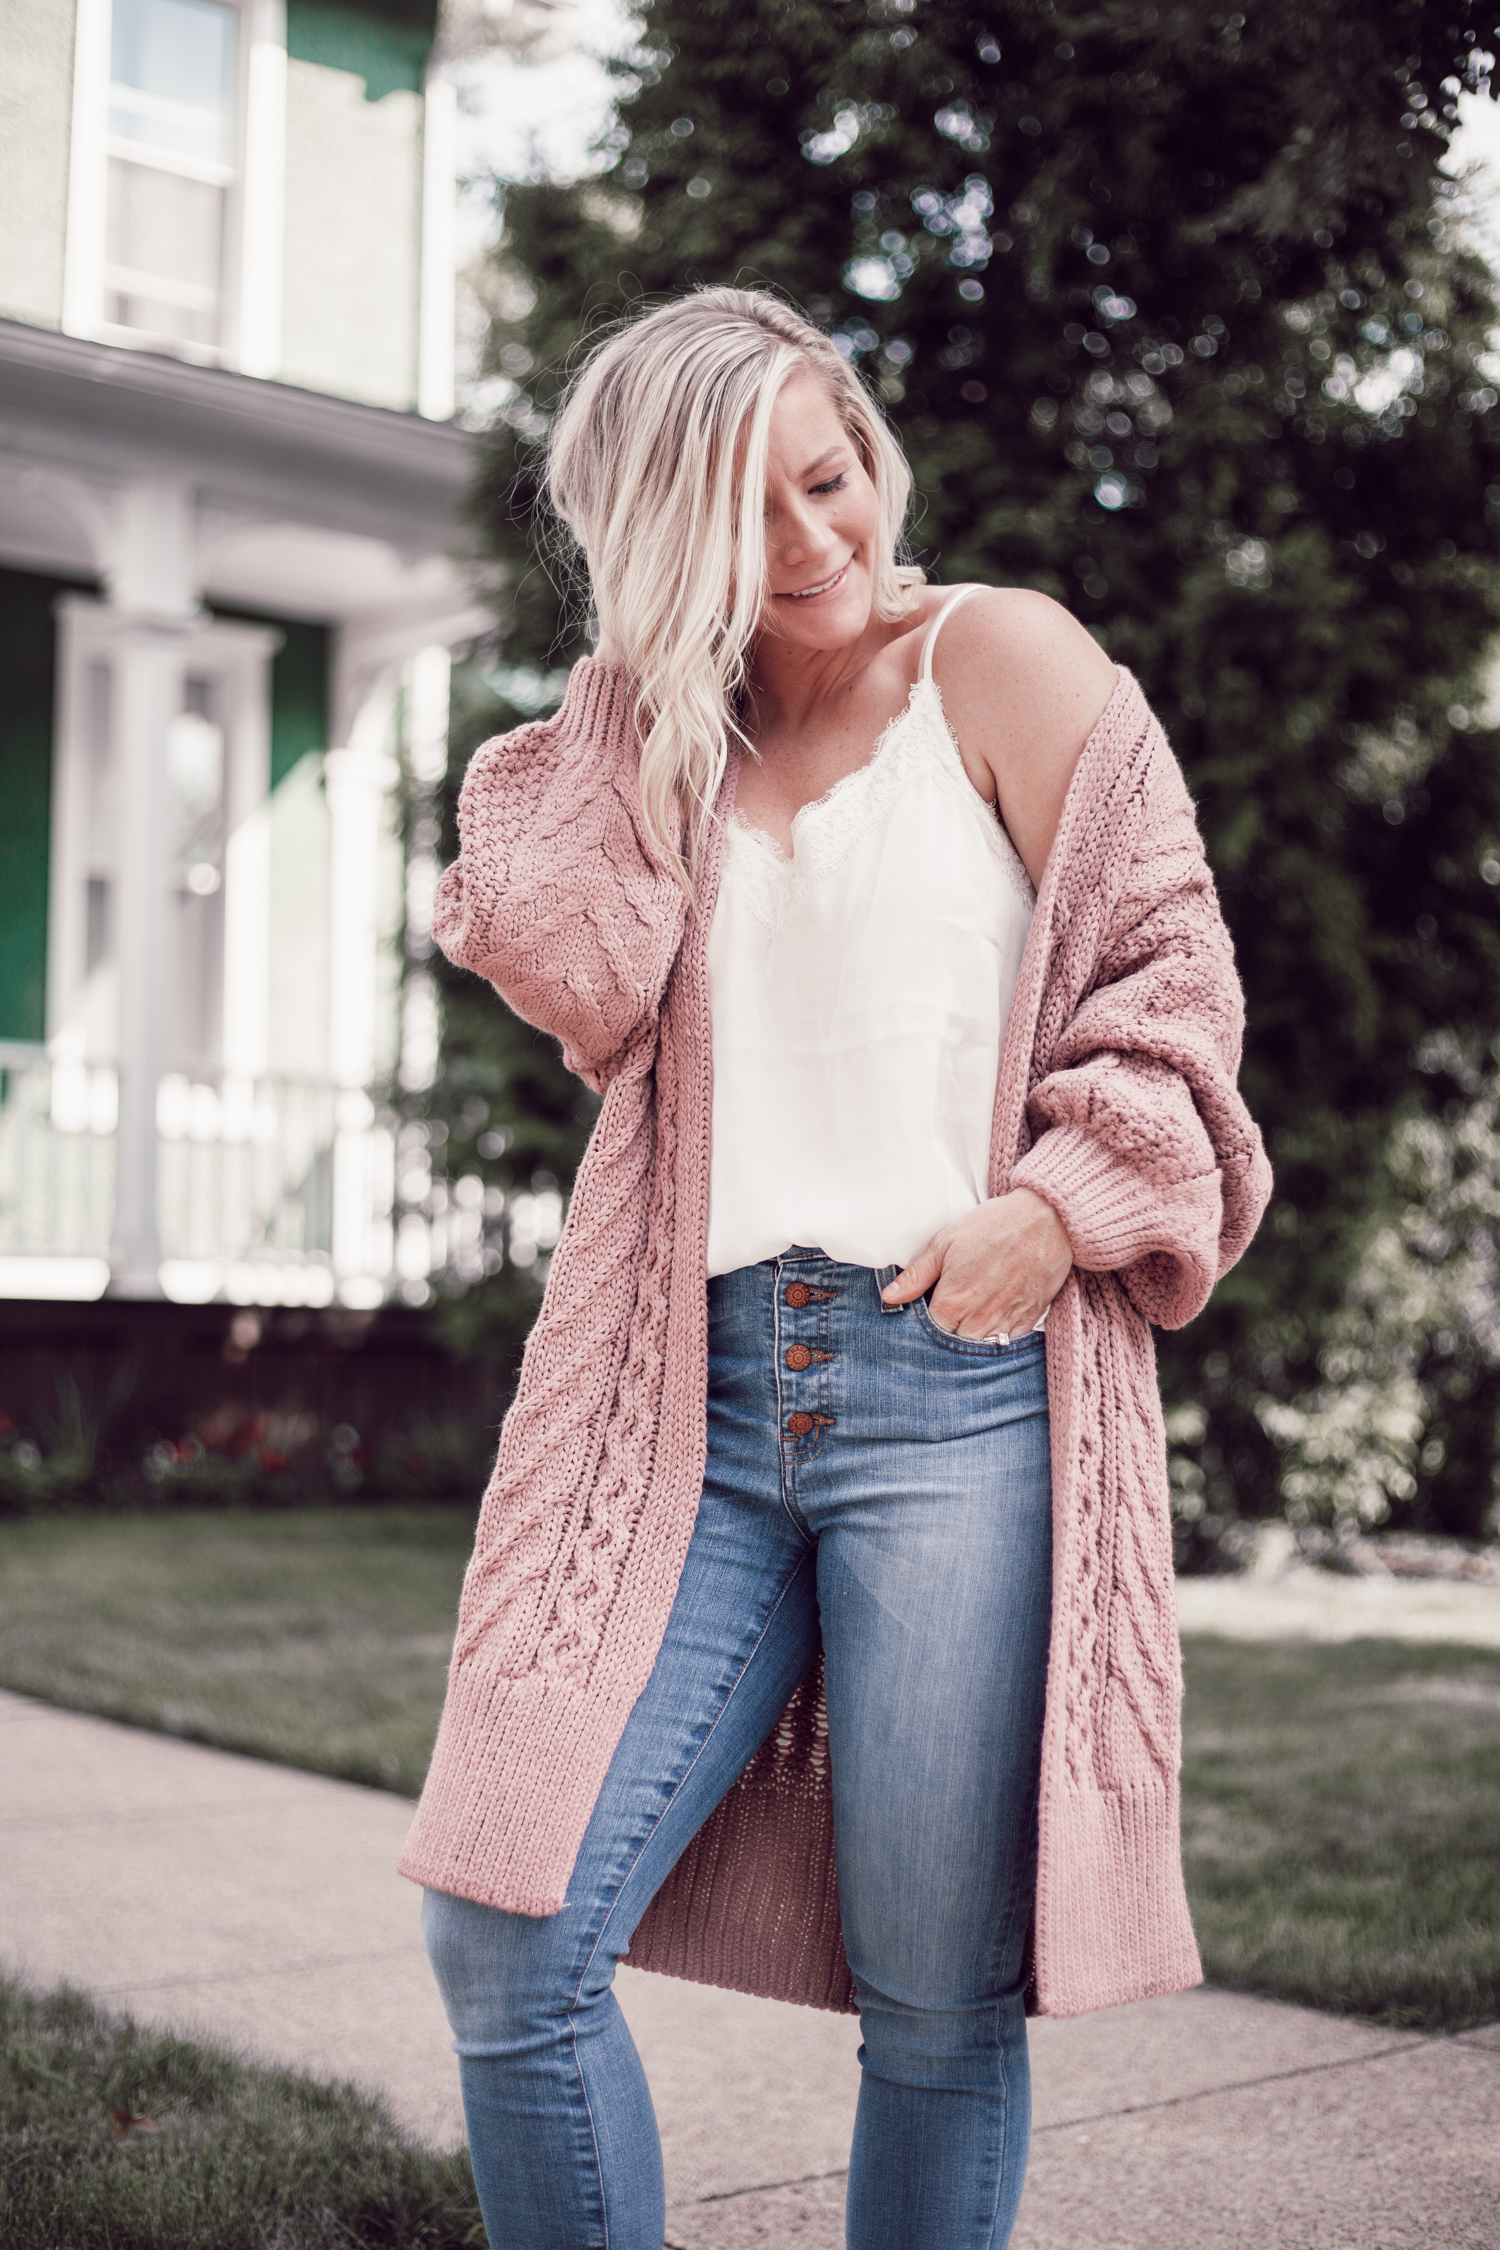 Nordstrom Anniversary Sale: Fall Staples All Under $100